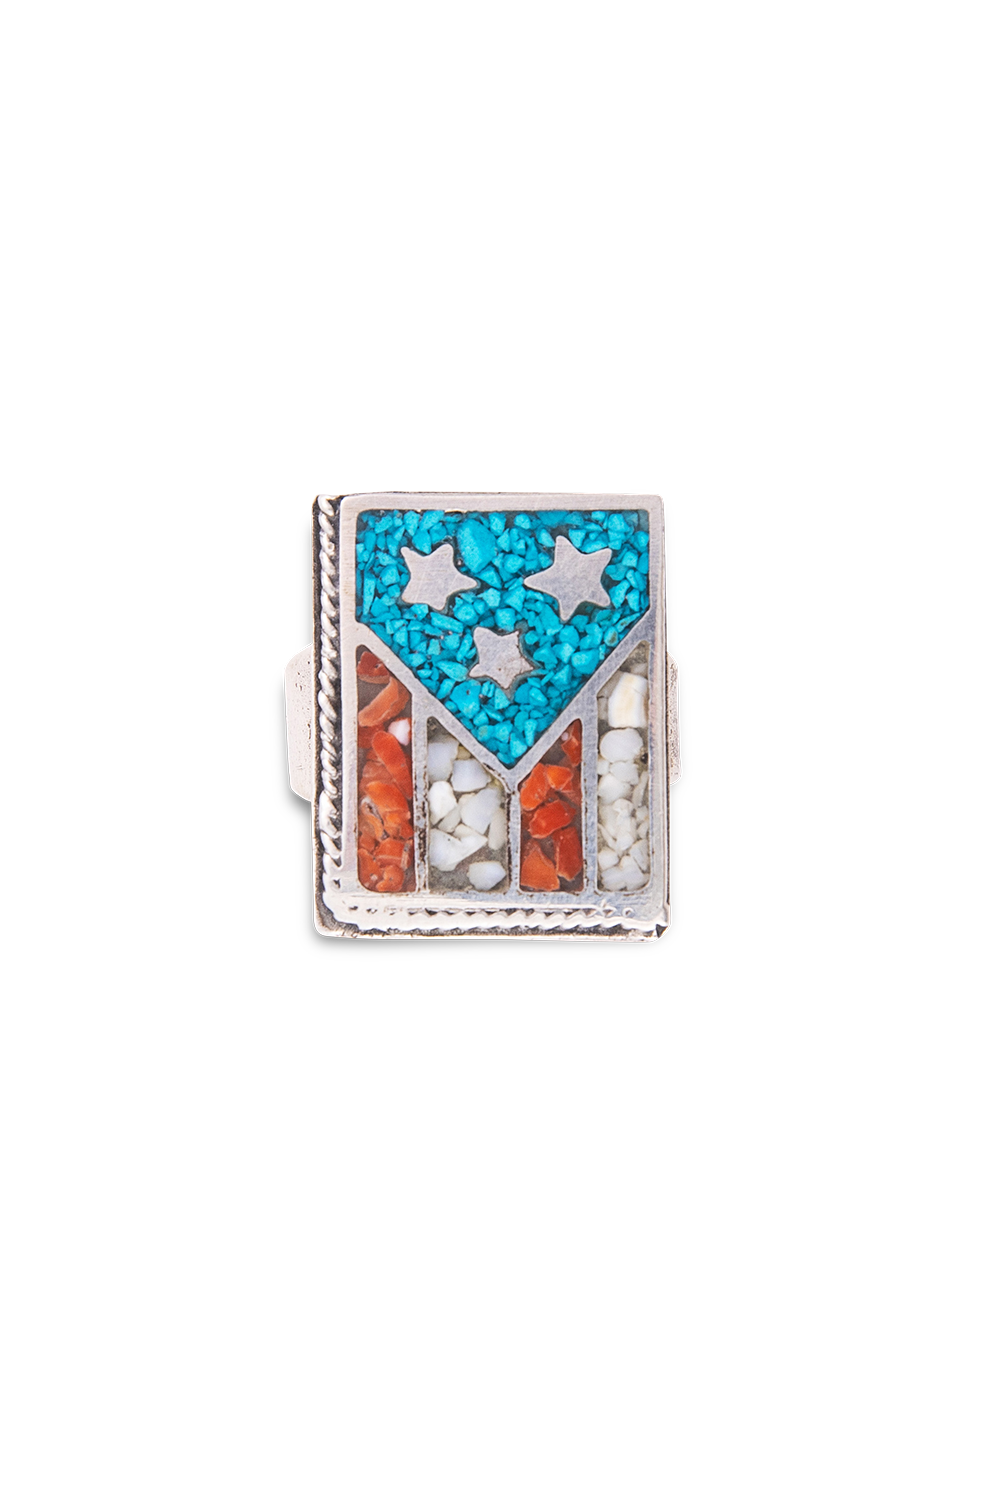 Ring, Mosaic Inlay, Flag, 498